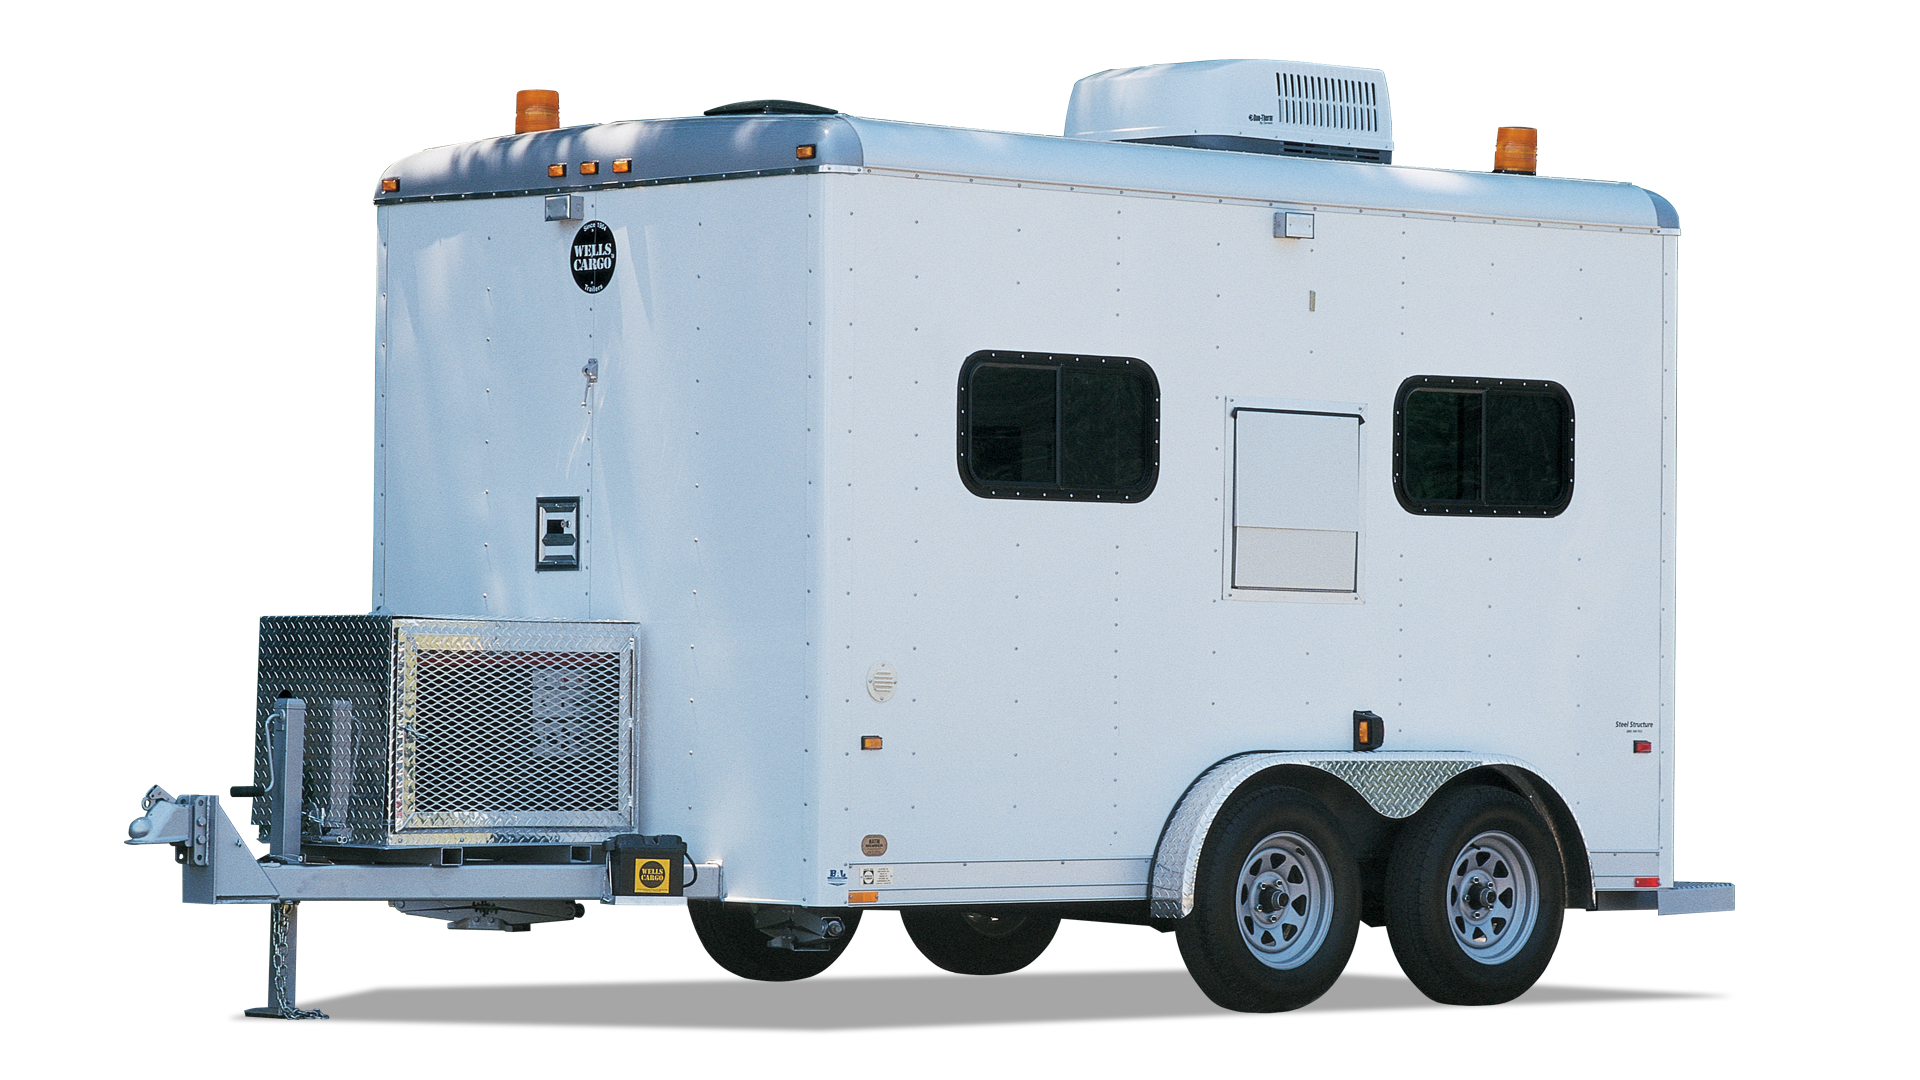 Fiber Splicing Trucks And Trailer Rentals And Leases Kwipped